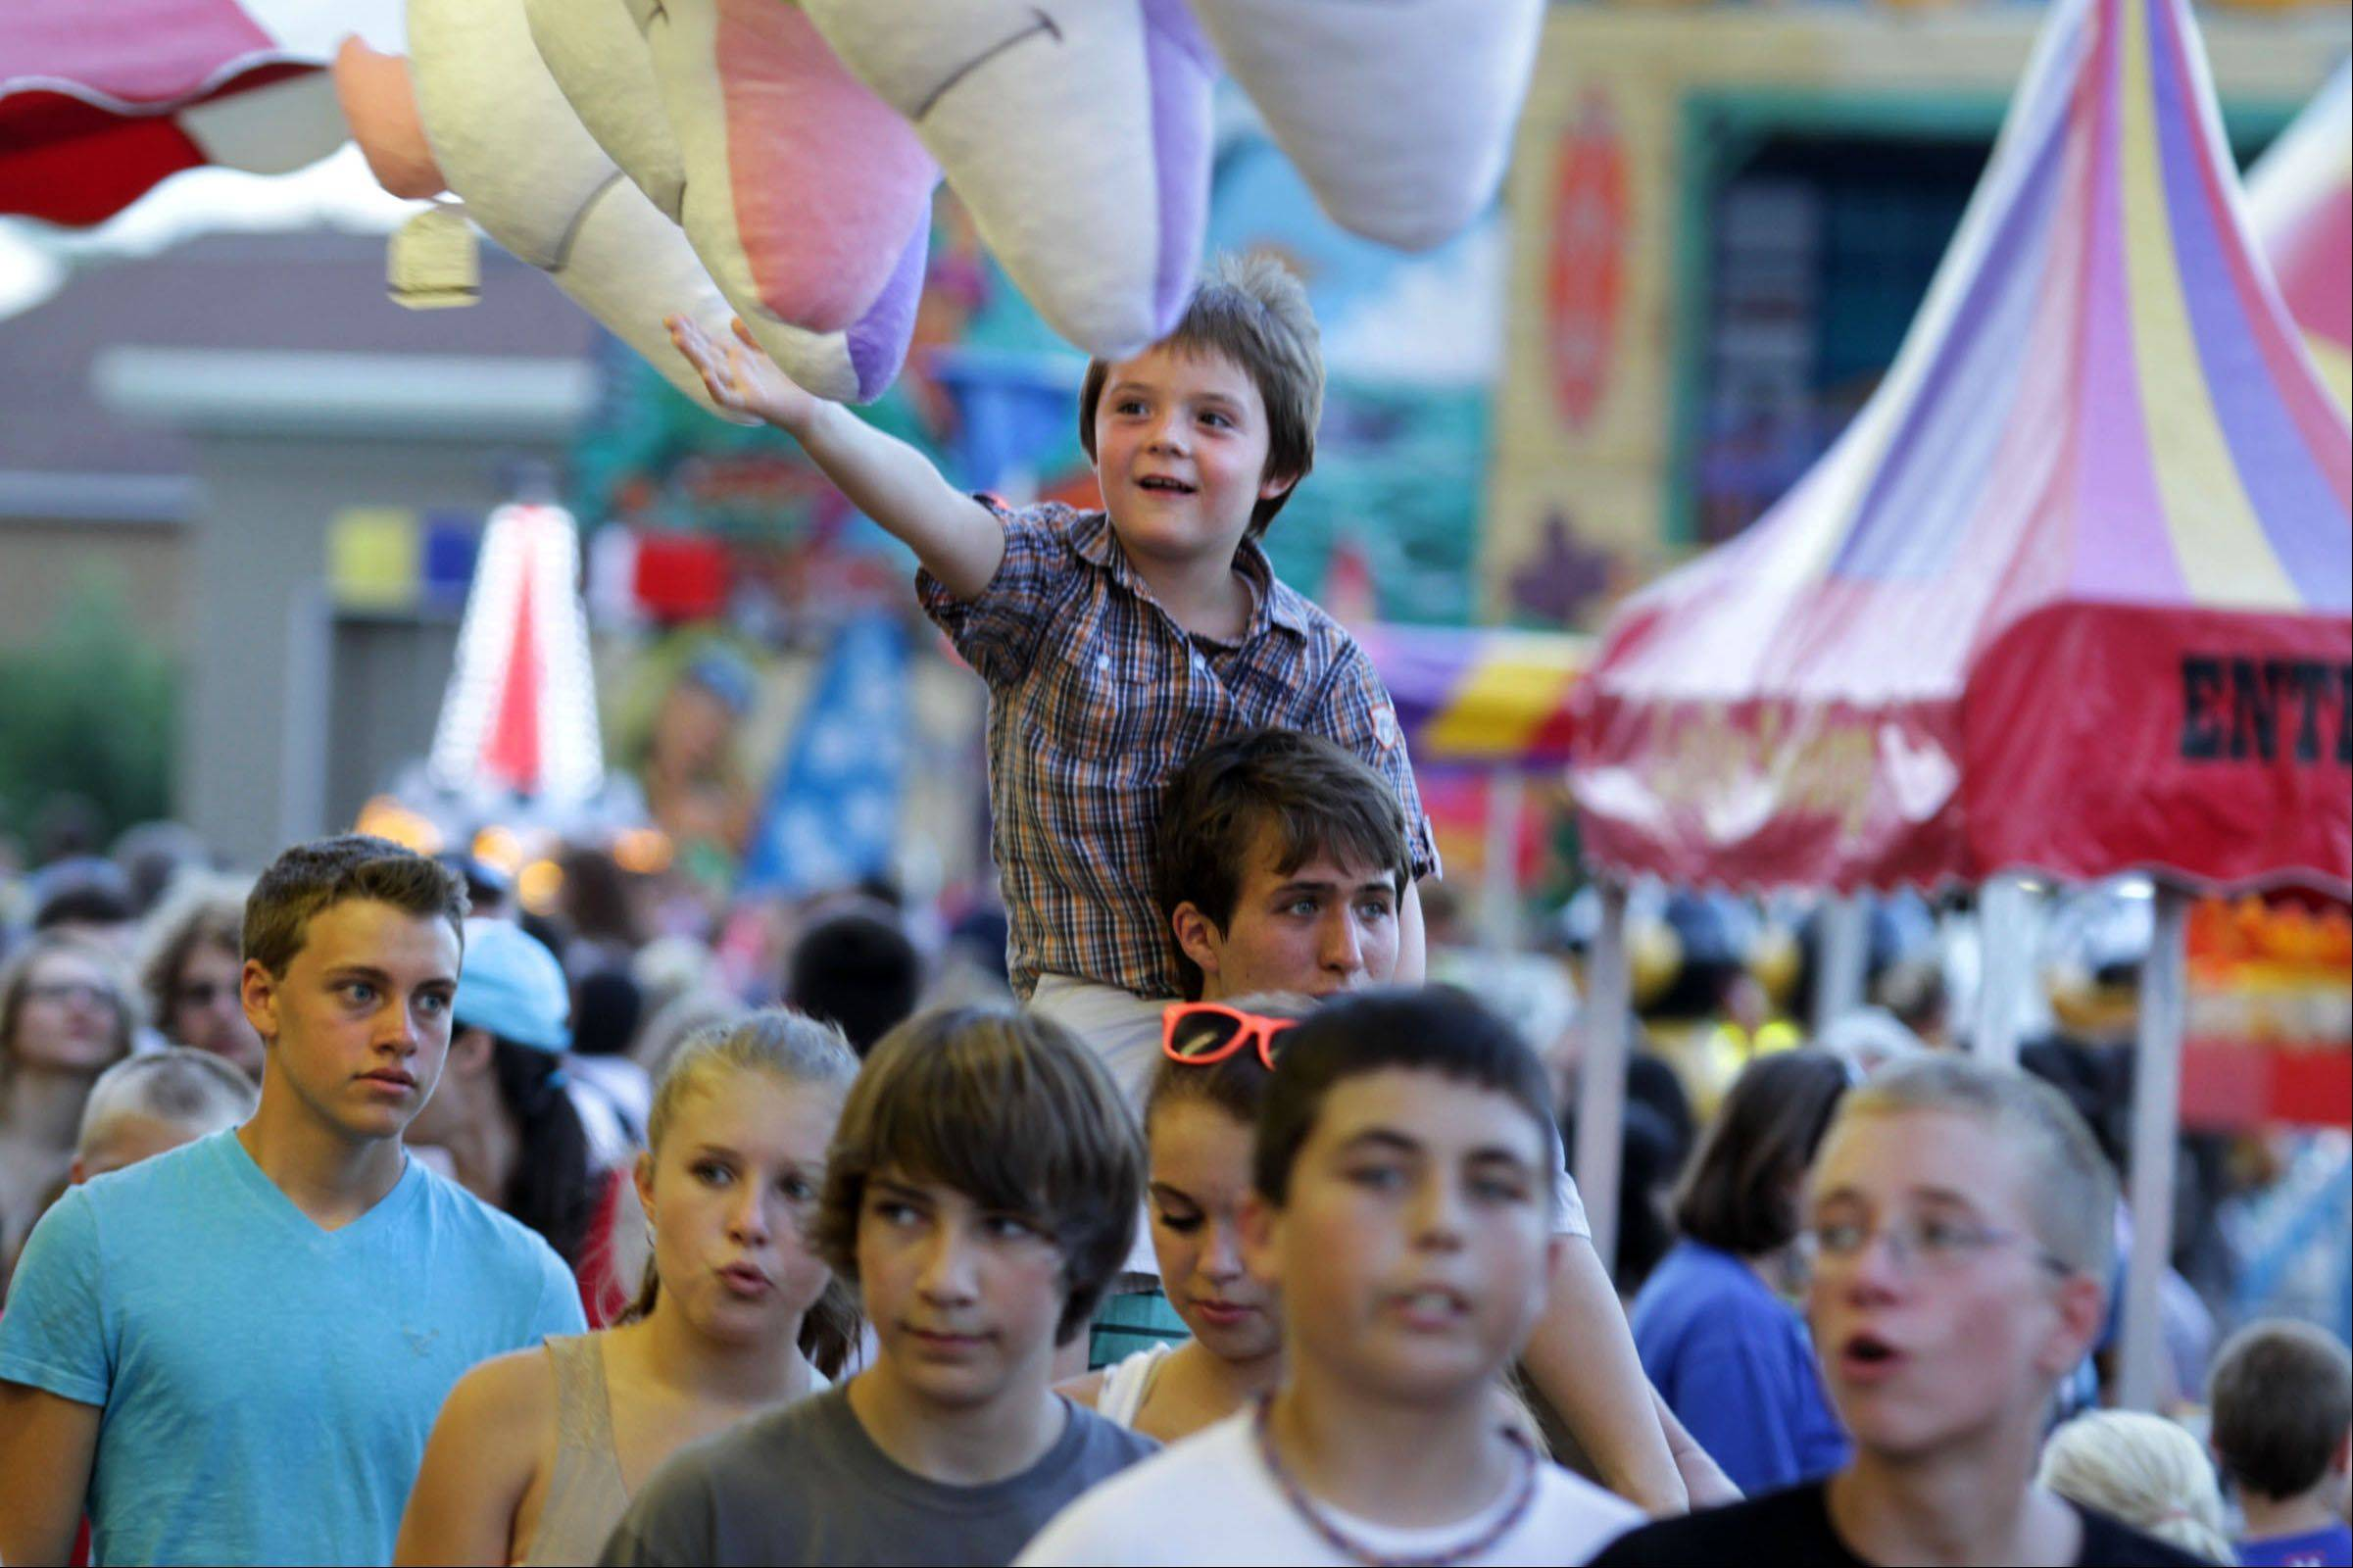 Parker Lambert reaches for a carnival prize while on the shoulders of his stepbrother, Grant Rodger, at the first day of Alpine Fest in Lake Zurich on Friday.